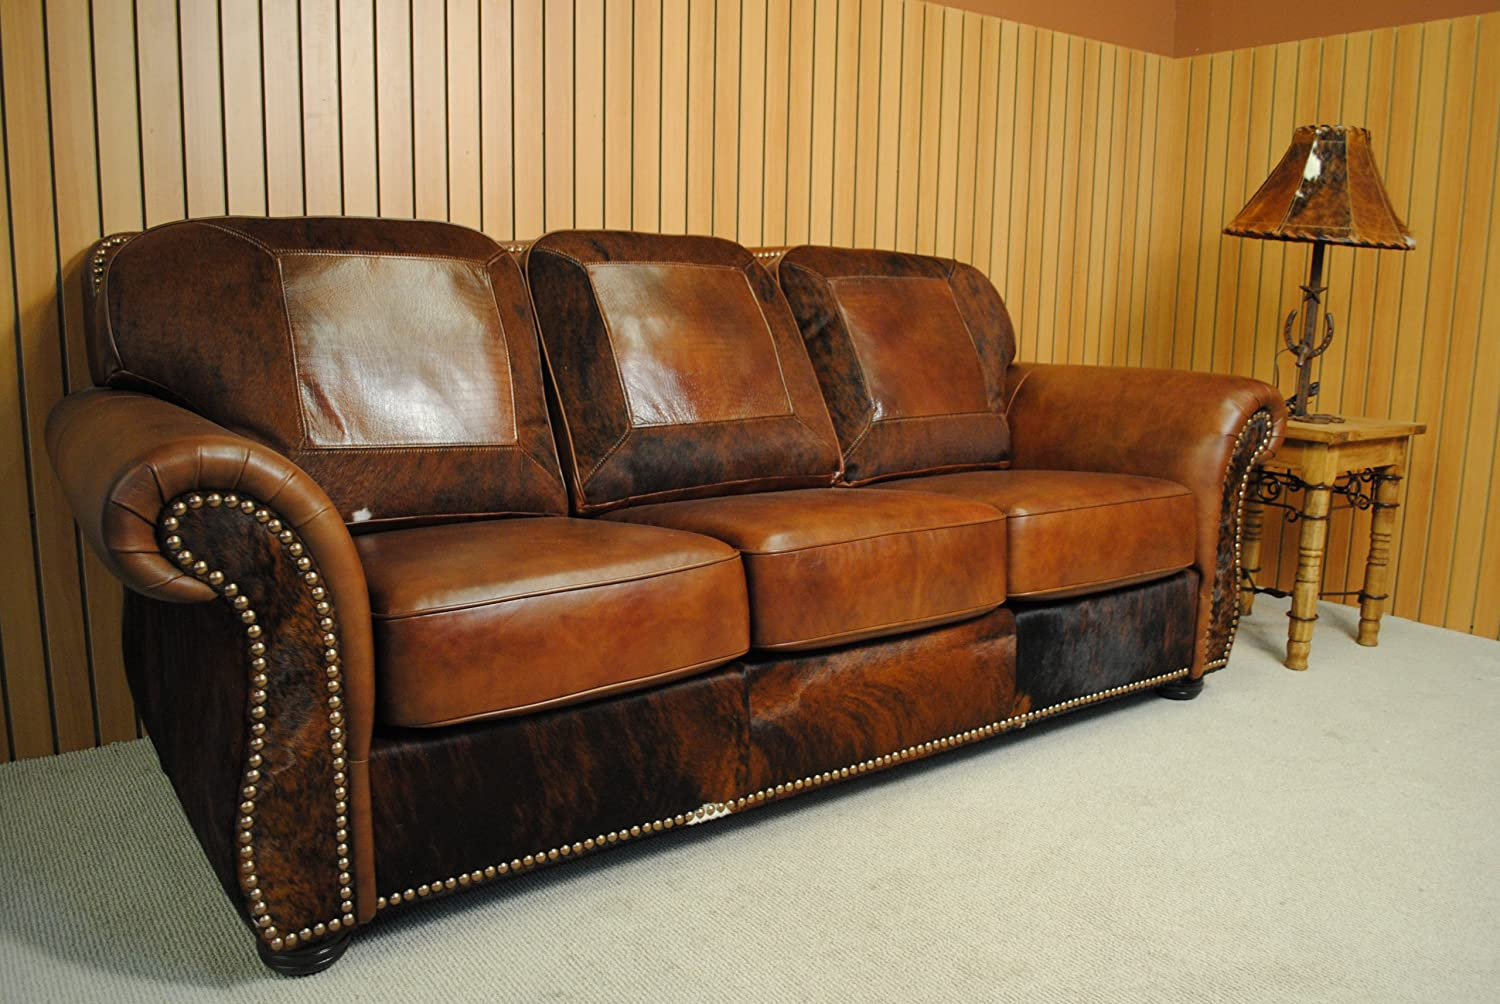 amazon com western leather and cowhide sofa kitchen dining rh amazon com cowhide leather sofa singapore full cowhide leather sofa